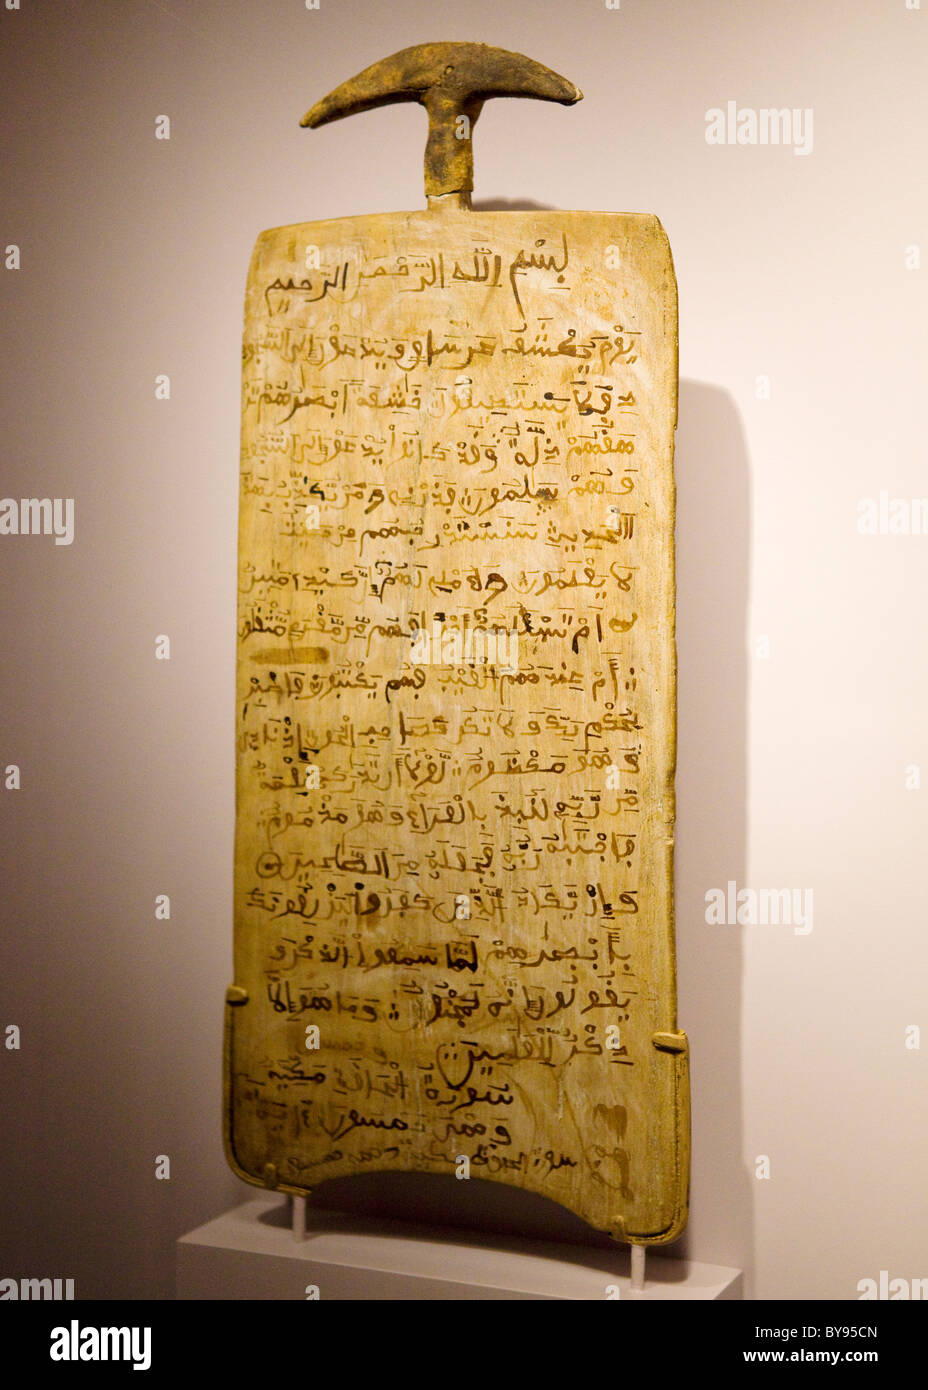 Koranic writing board used by the Hausa peoples of Nigeria - Stock Image